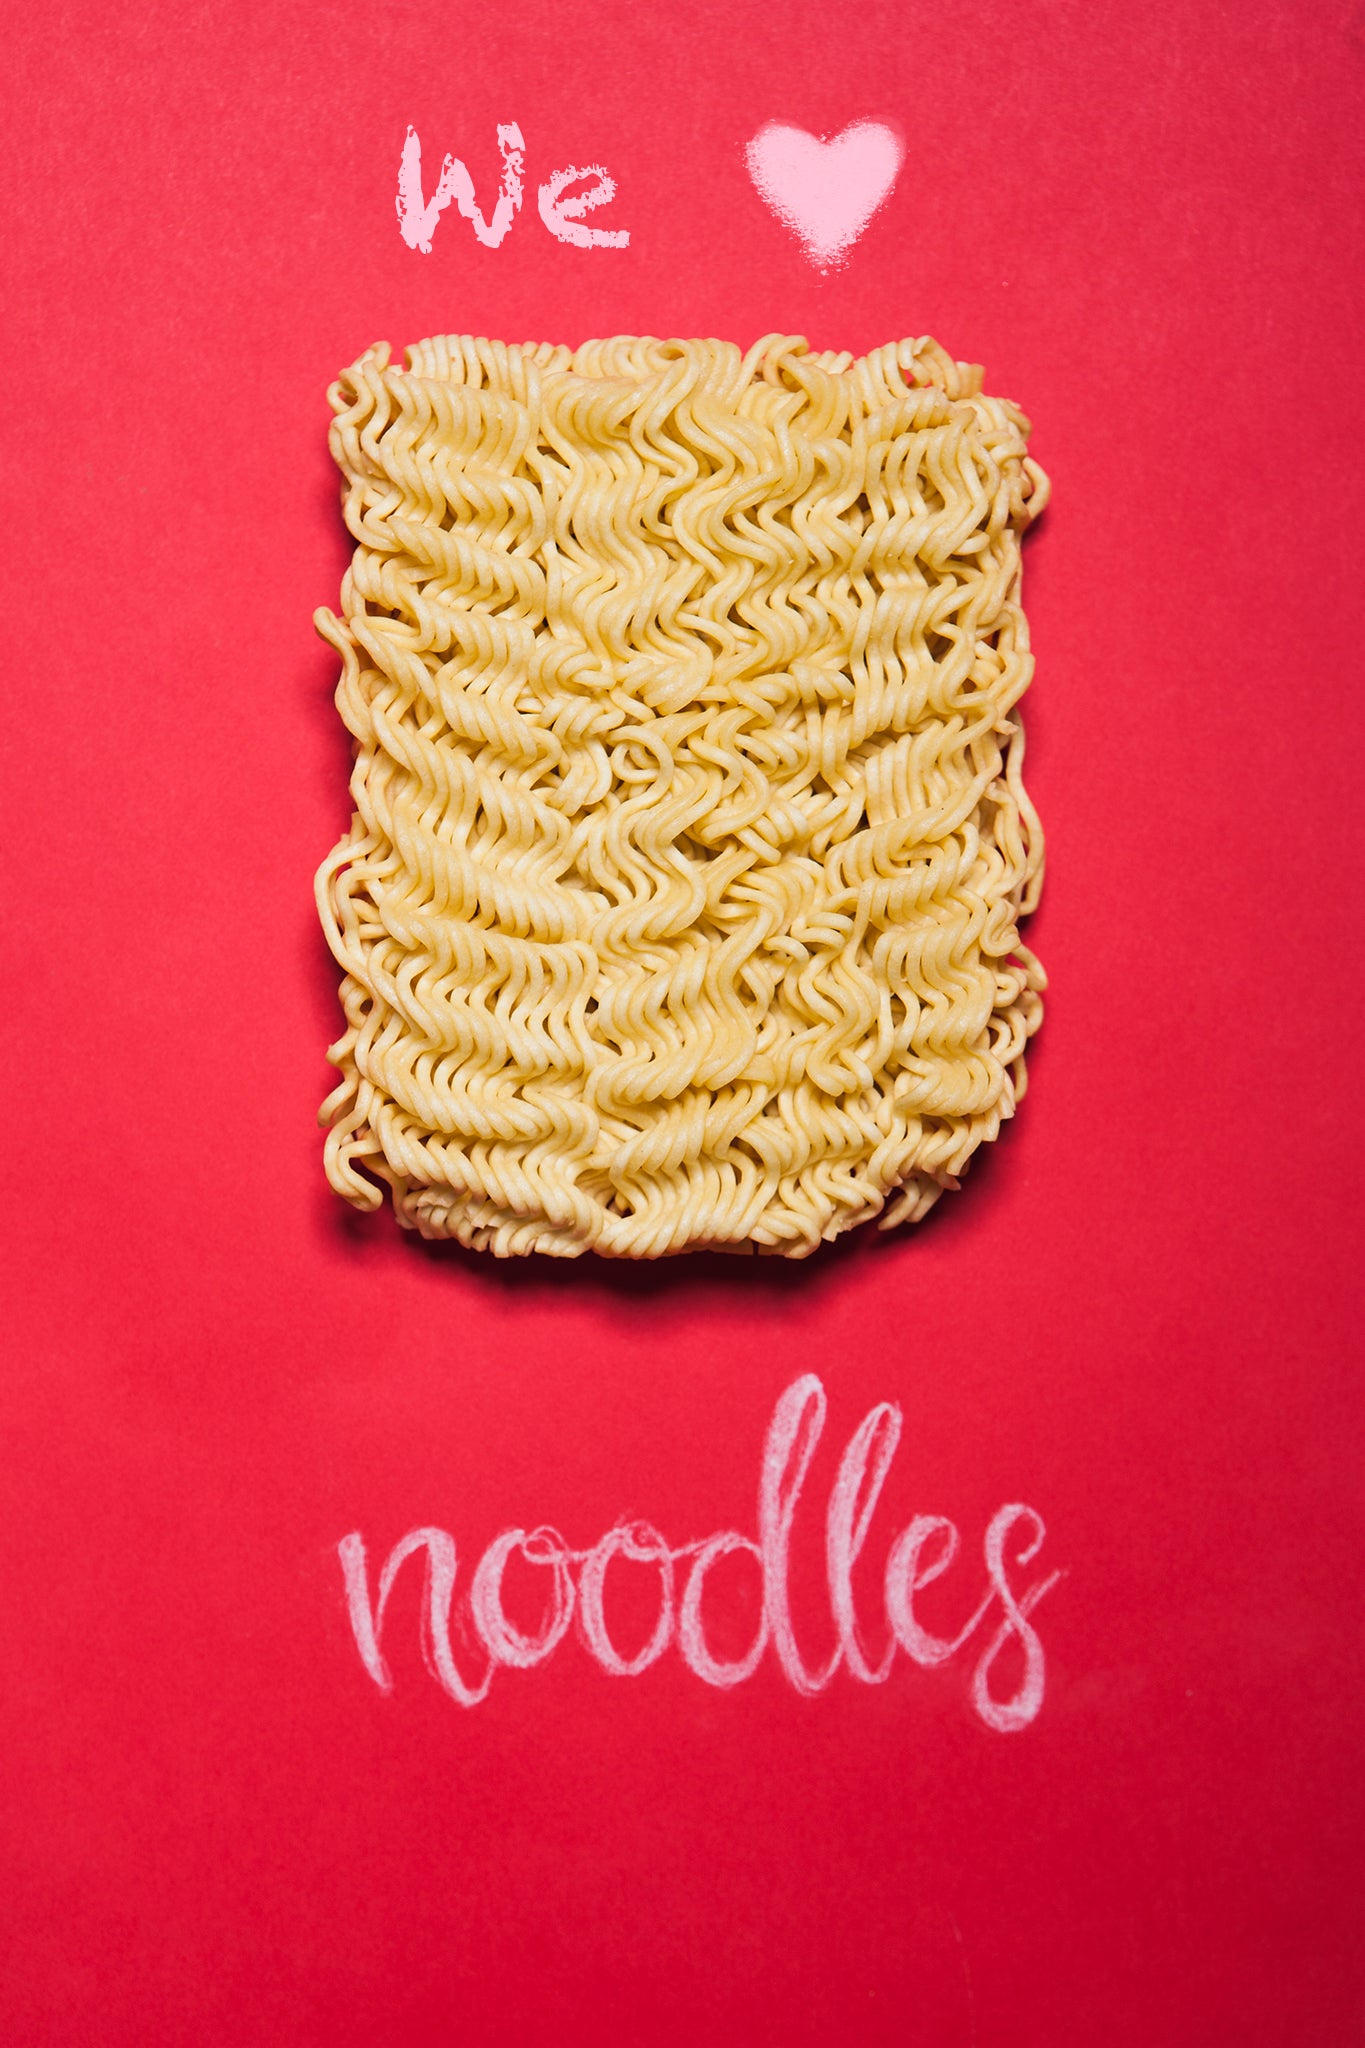 we love noodles - Noodelight